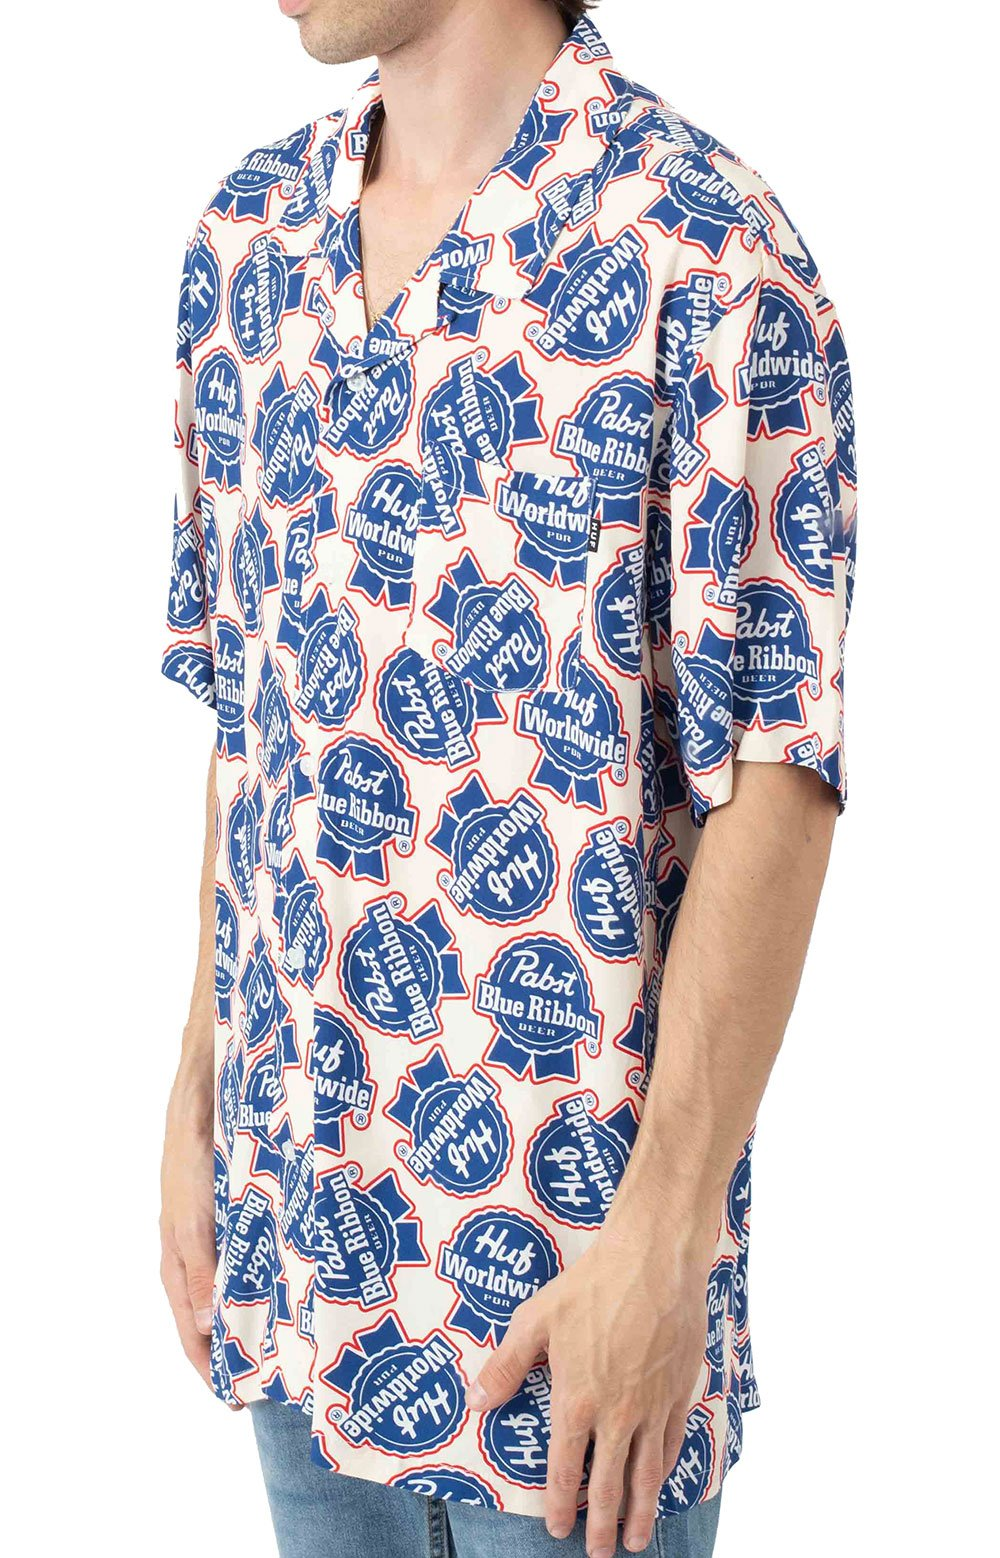 Rayon S/S Woven Button-Up Shirt - Natural  2